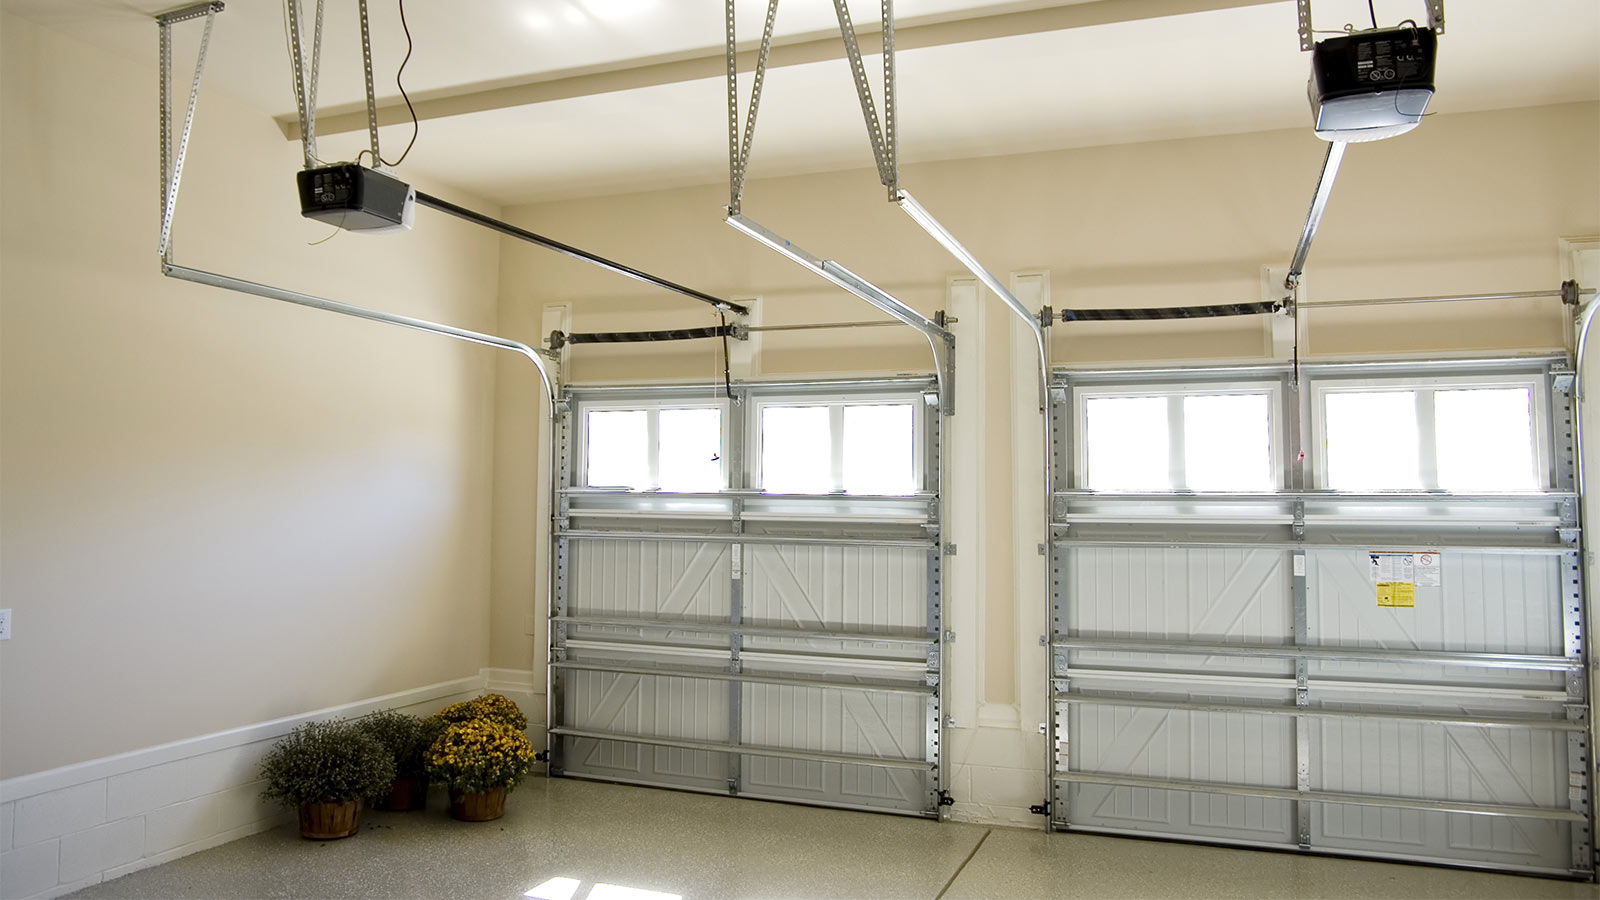 Sectional Garage Doors from Window Roller Shutters Berkshire suppliers.